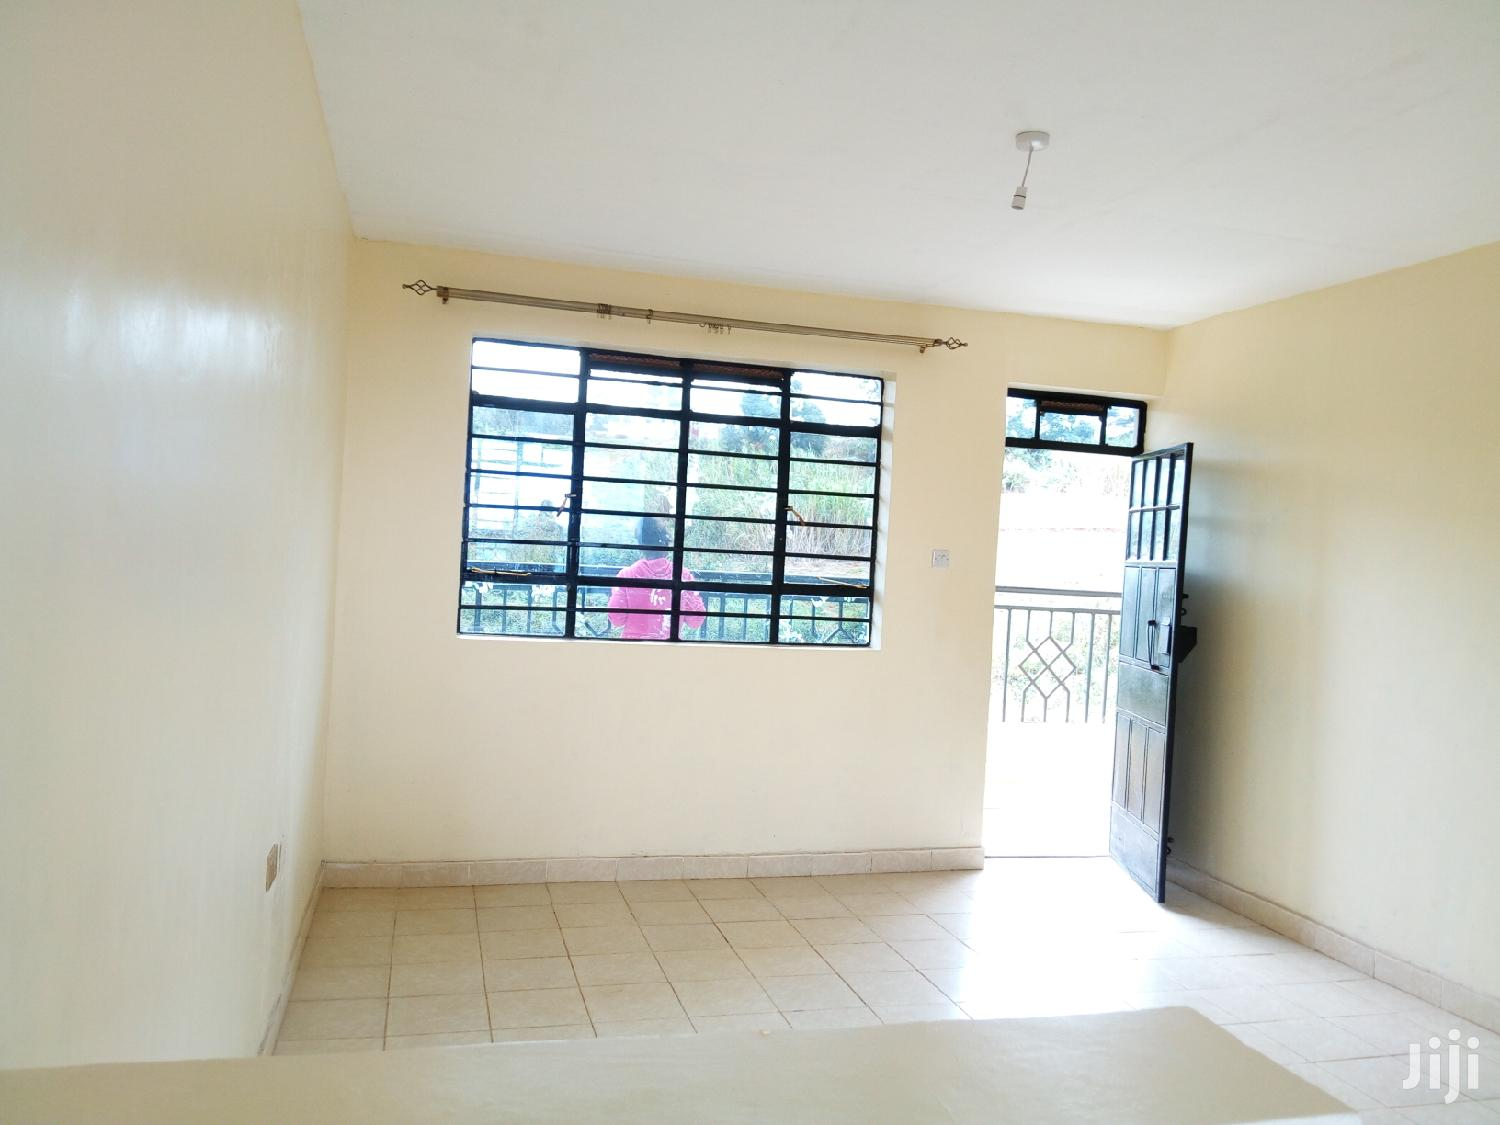 One Bedroom Apartment To Let | Houses & Apartments For Rent for sale in Gitaru, Kiambu, Kenya